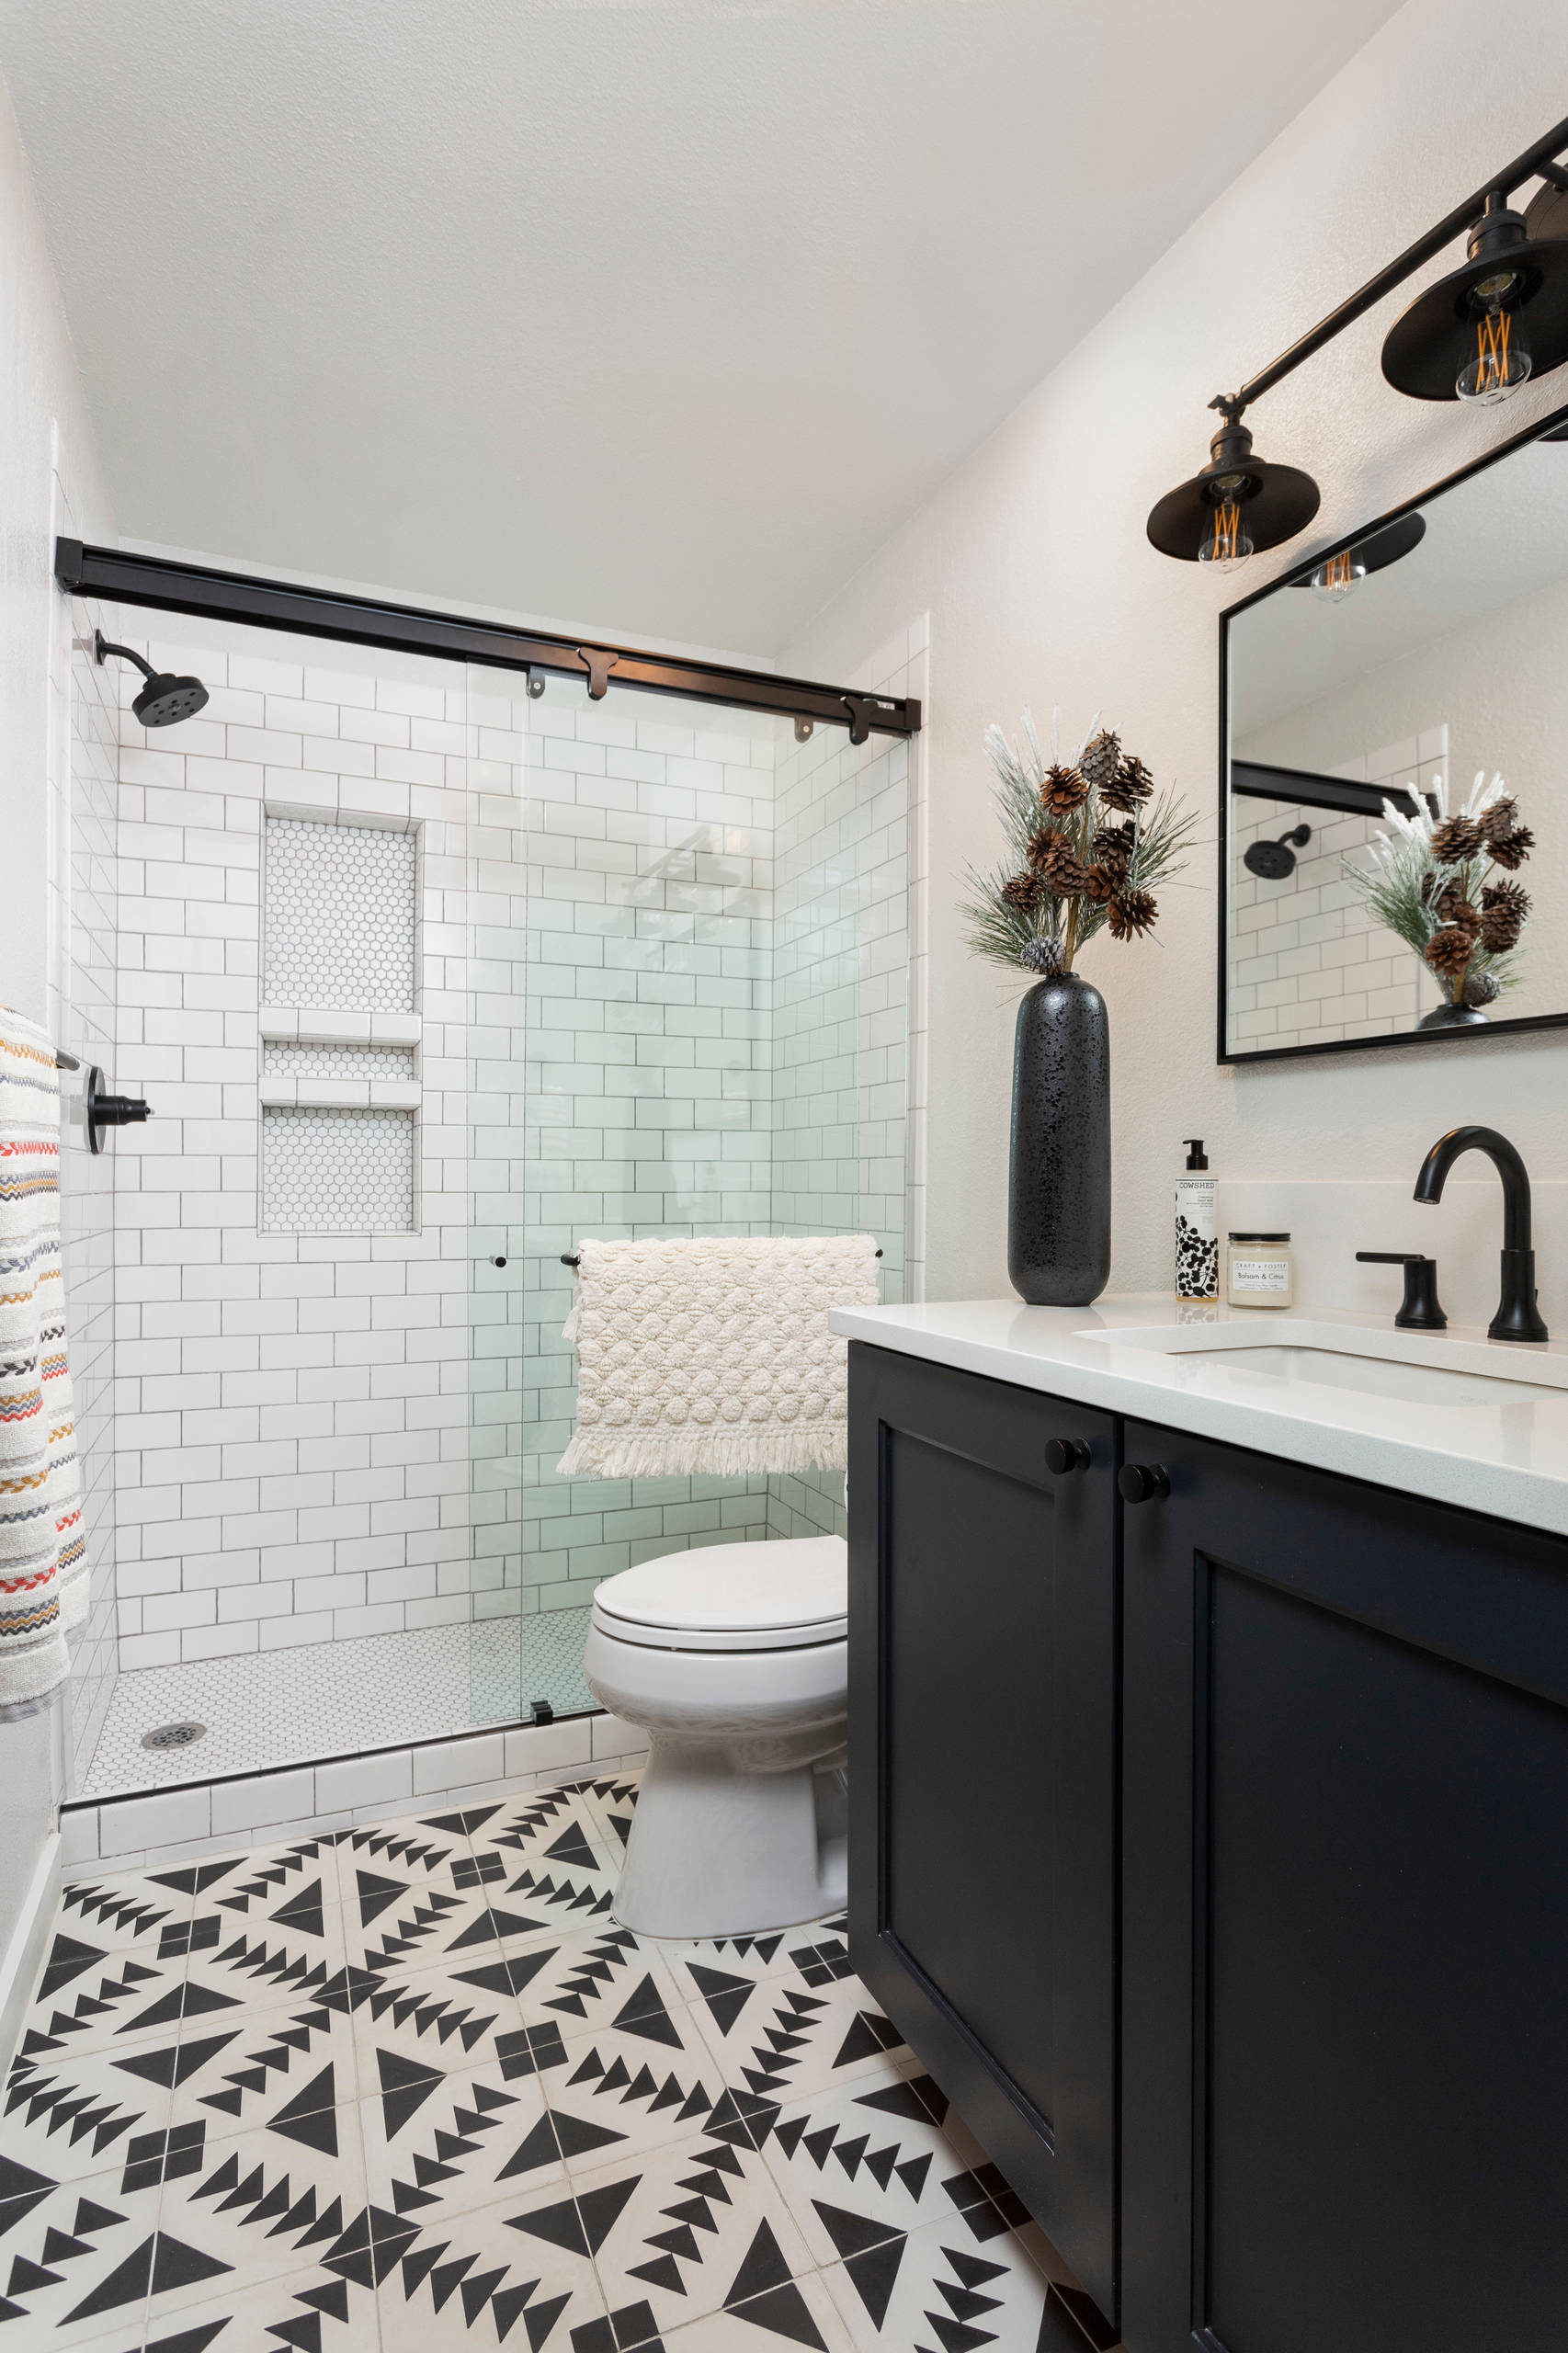 75 Beautiful Bathroom With Black Cabinets Pictures Ideas February 2021 Houzz